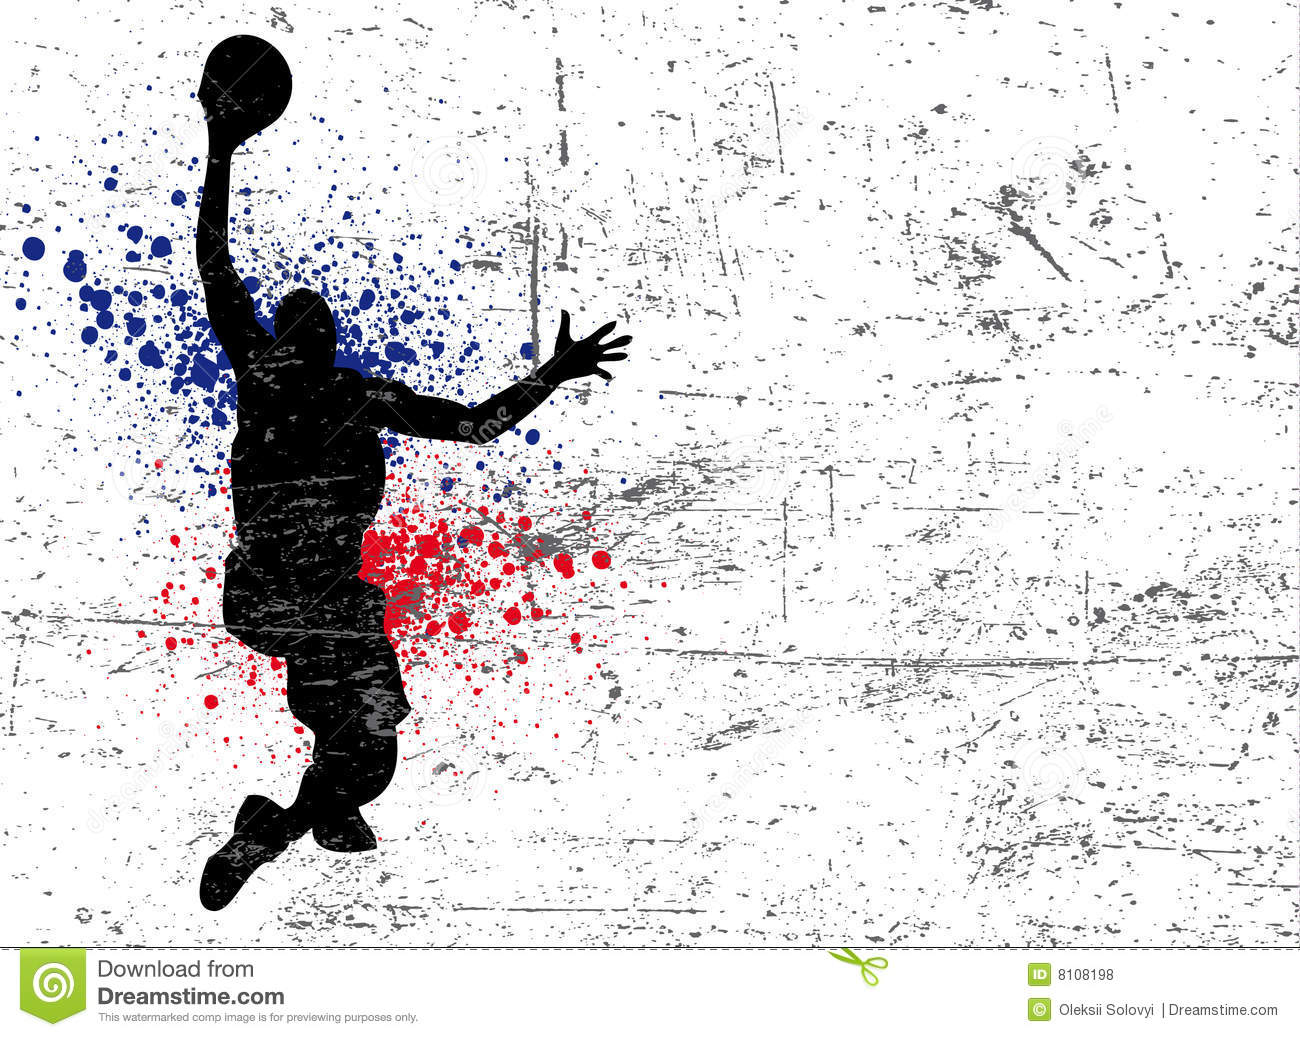 Poster Photos Basketball Poster Royalty Free Stock Photos Image 8108198